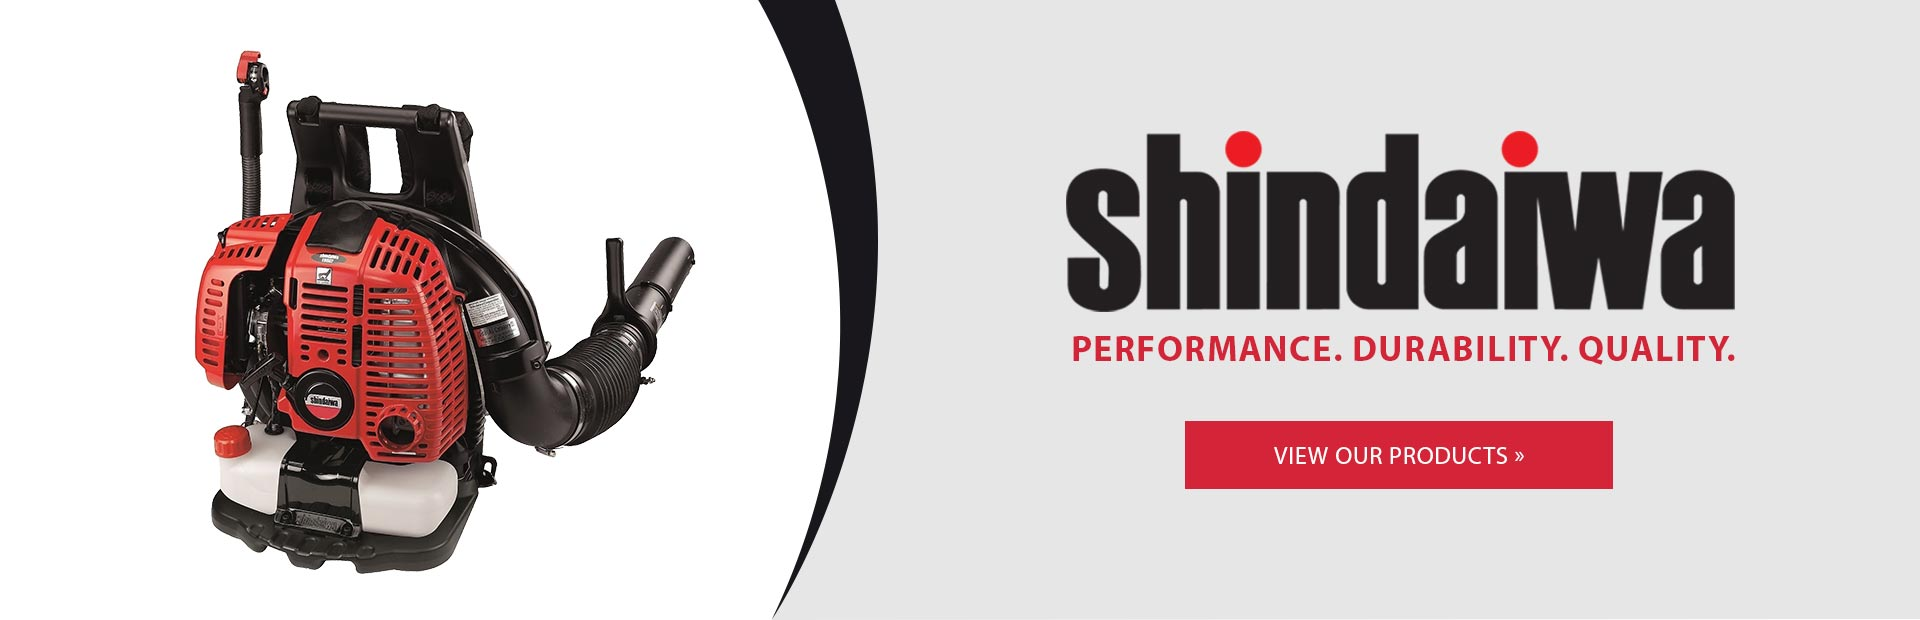 Shindaiwa: Click here to view our products.